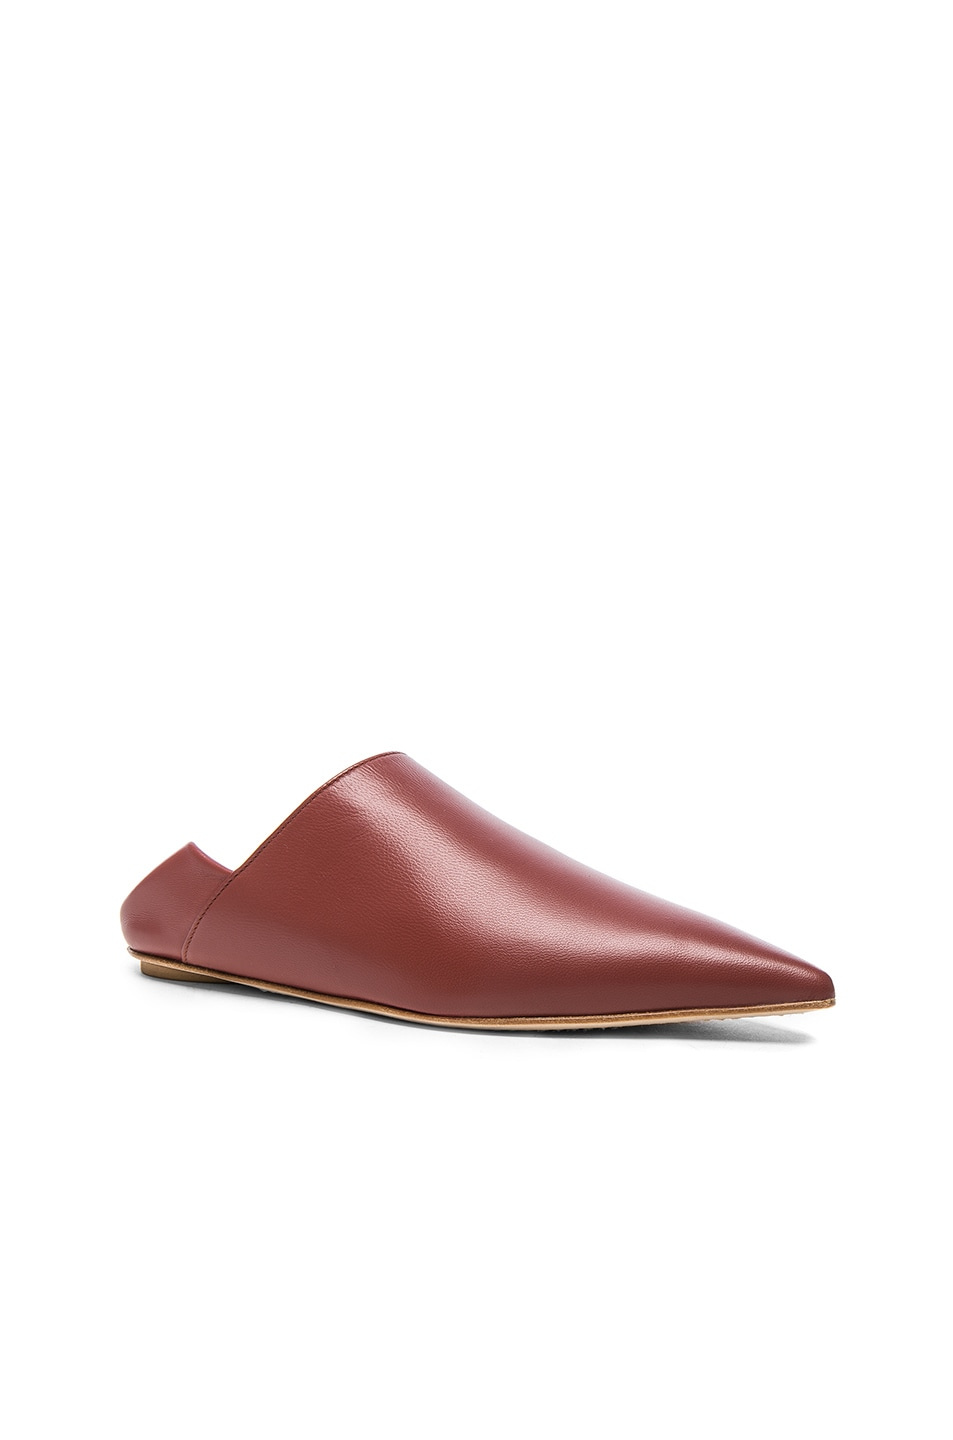 Image 2 of Marni Leather Sabot Mules in Saddle Brown